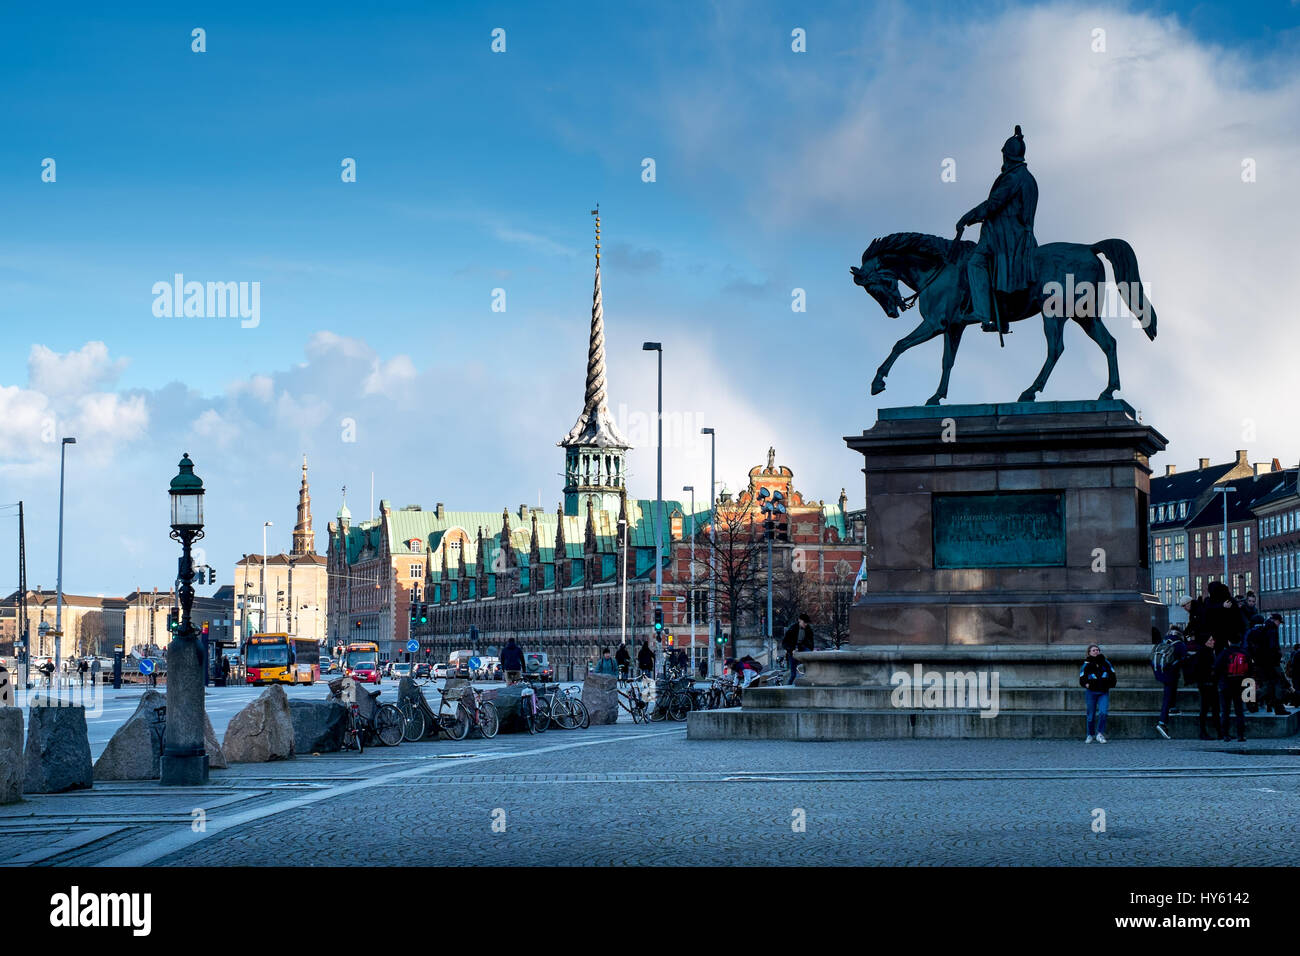 Striking equestrian statue of Christian IX with Børsen, a 17th century stock exchange in the background, Copenhagen, - Stock Image